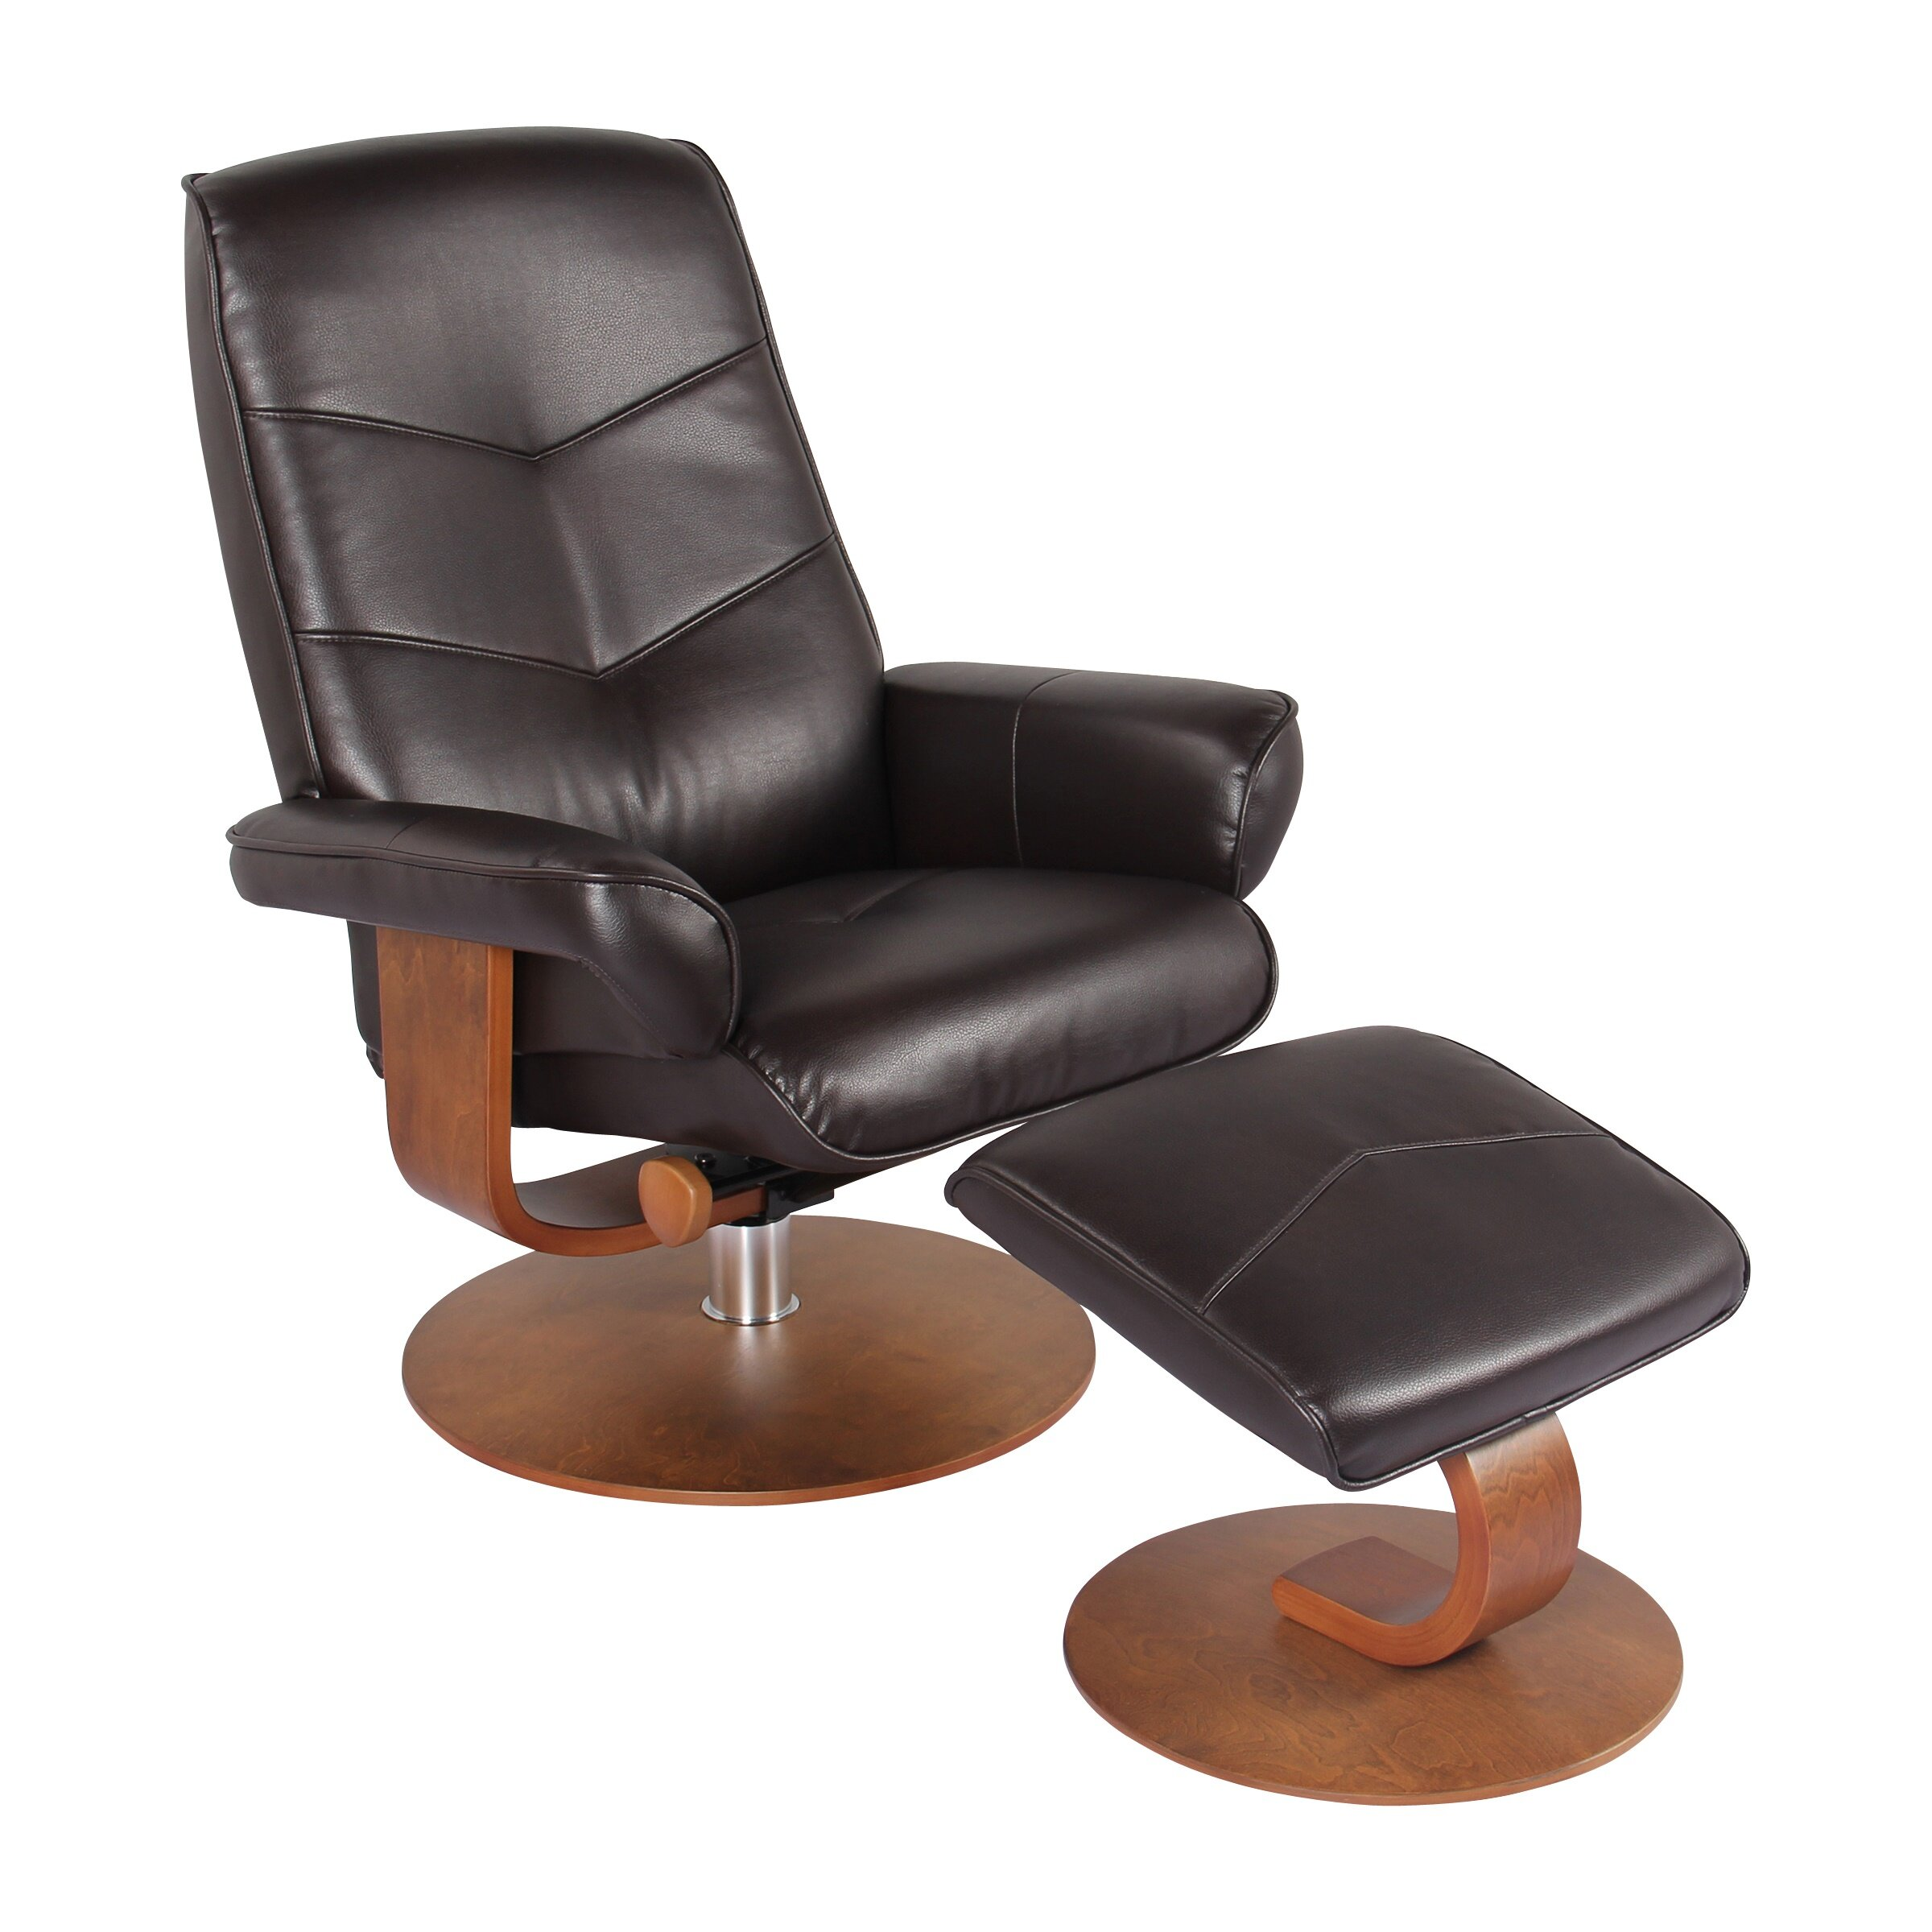 Aubuchon Faux Leather Manual Swivel Recliner with Ottoman